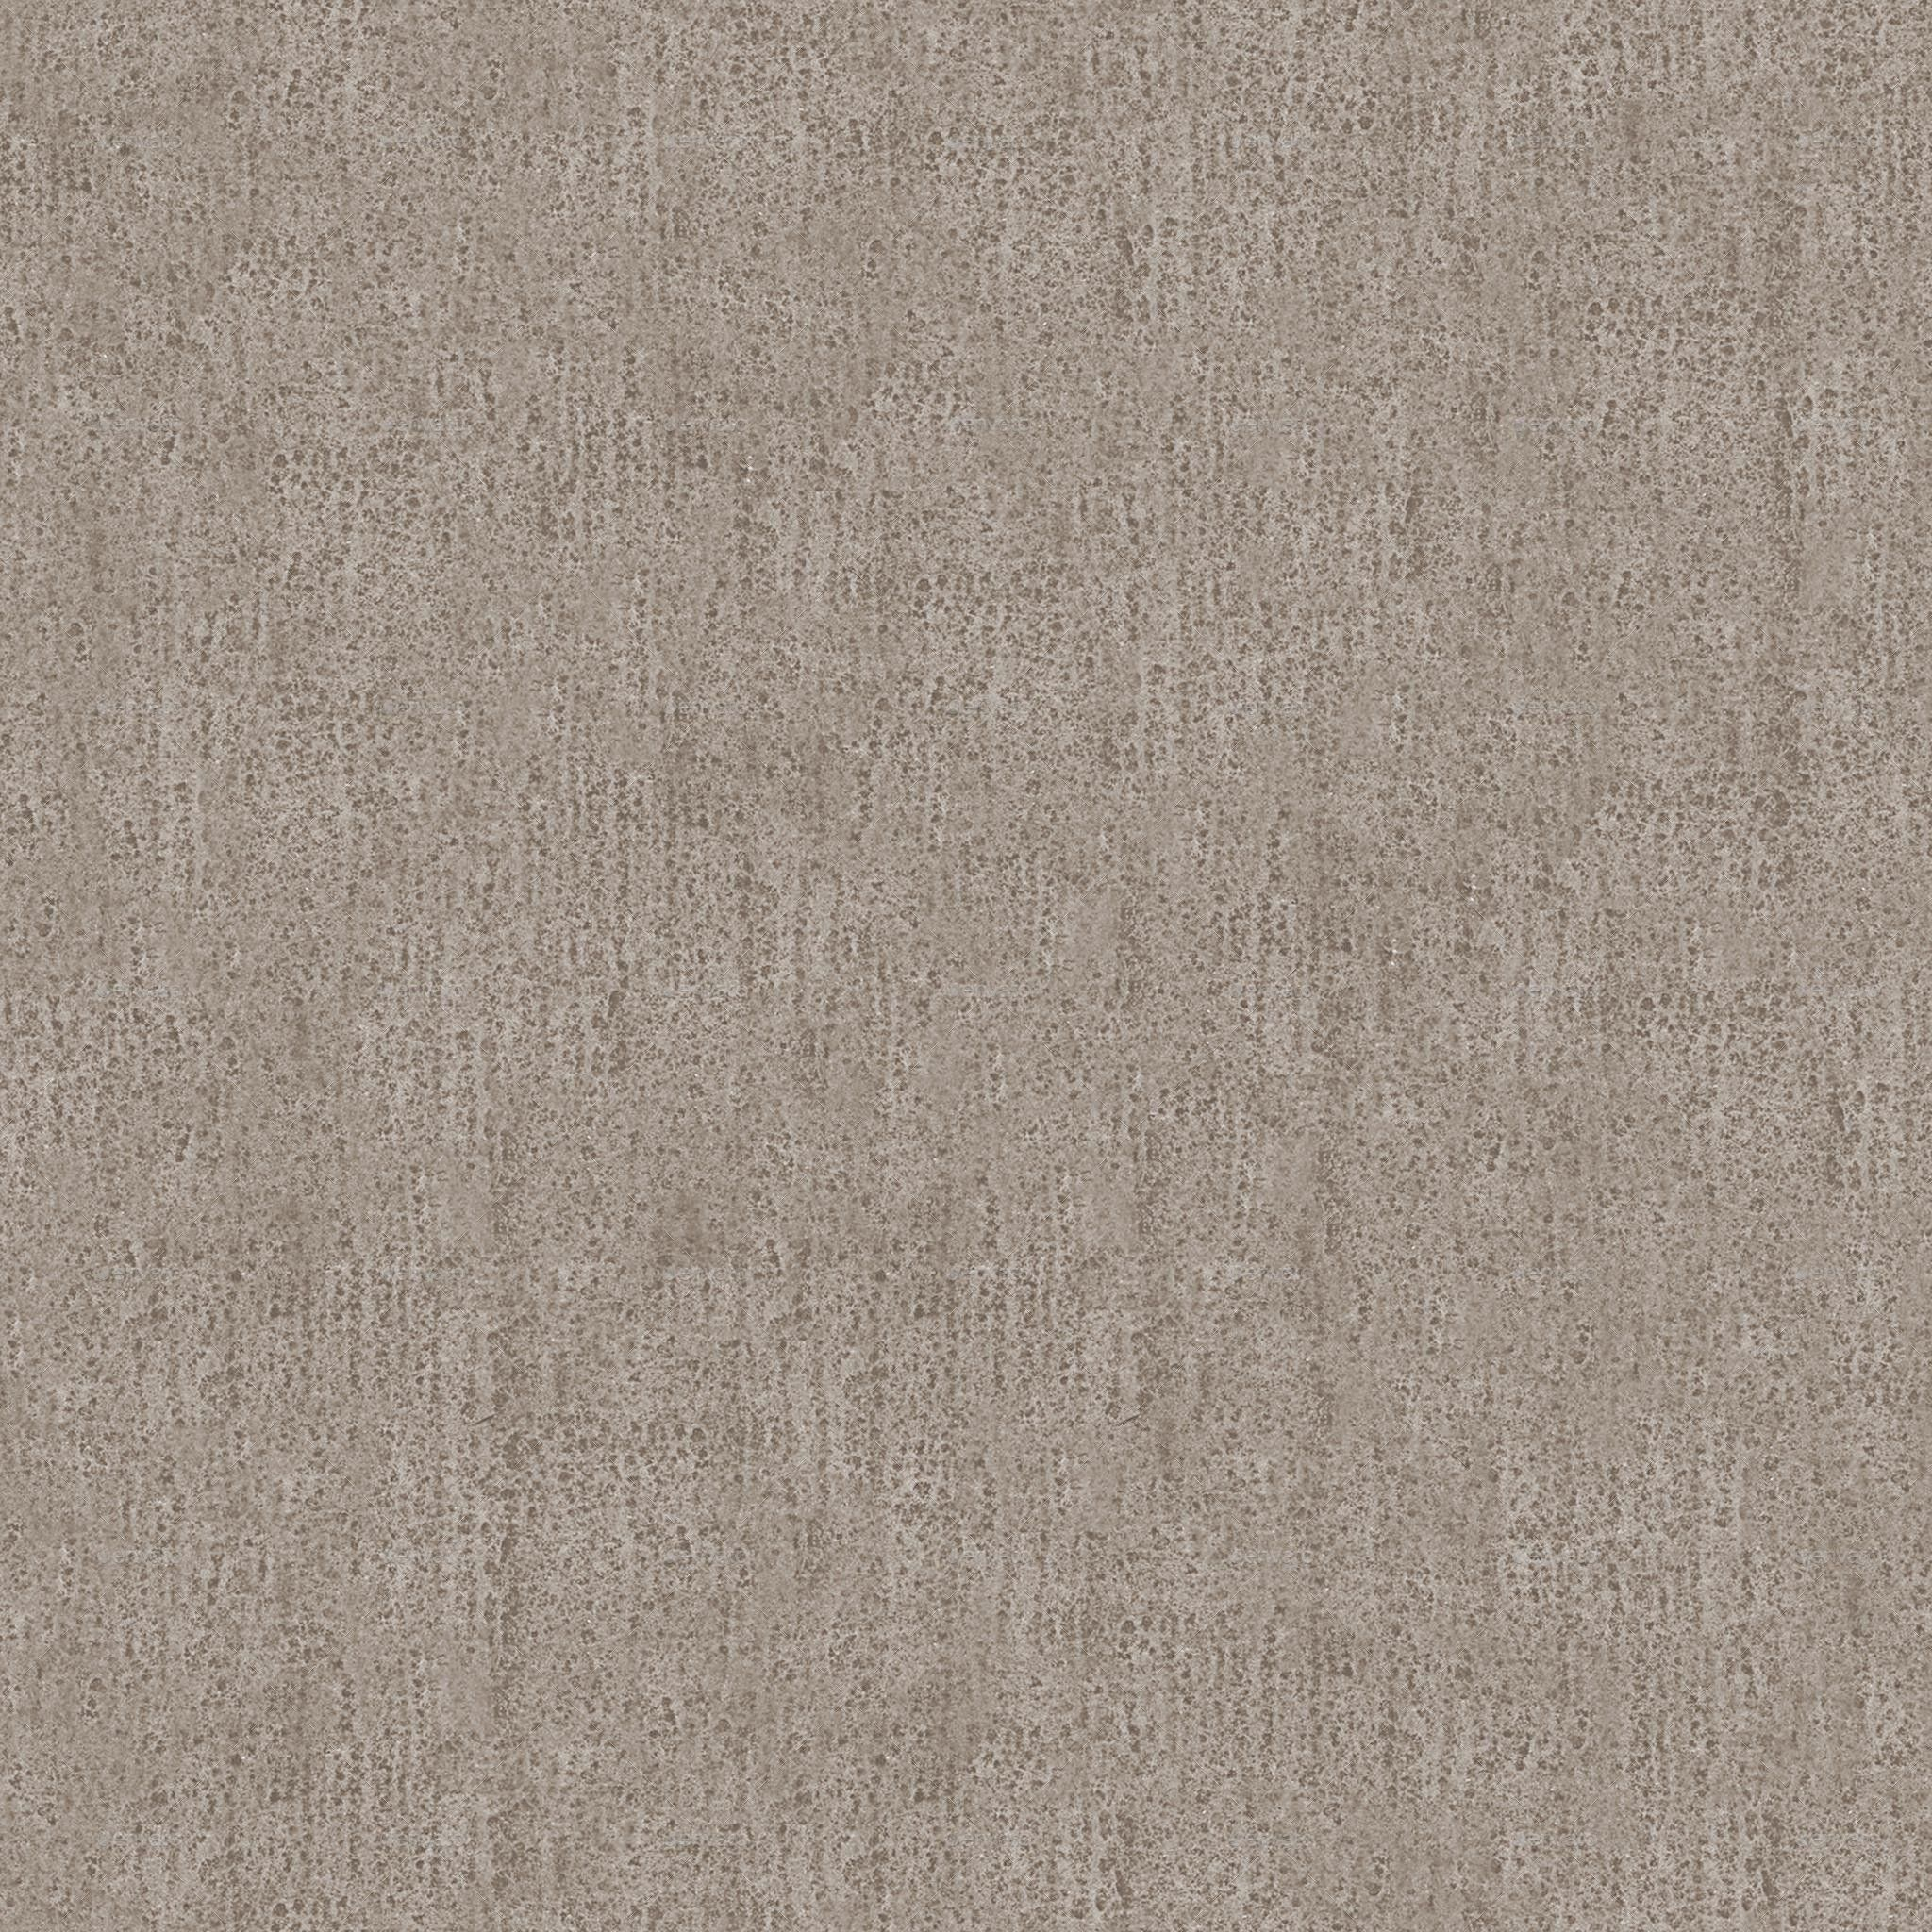 Concrete Seamless Texture Set Volume 2 Curtain Fabric Grey Fabric Made To Measure Blinds